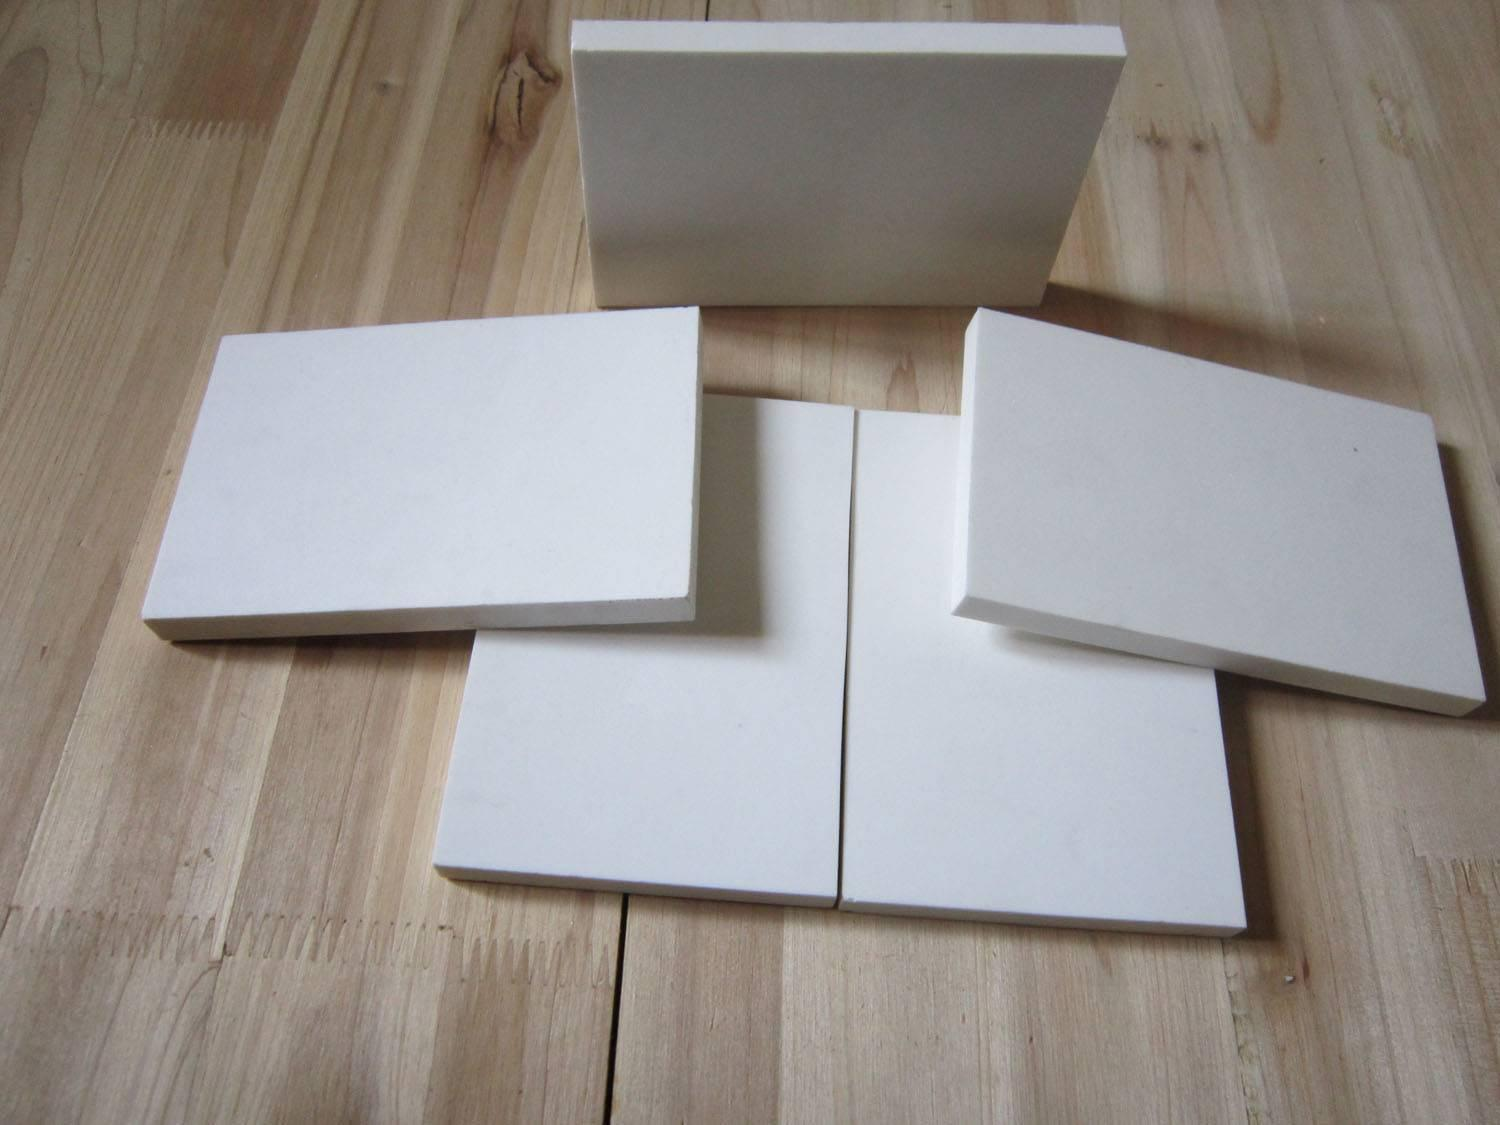 United states ceramic tile company products image collections china united refractories china united refractories manufacturers china united refractories china united refractories manufacturers and suppliers dailygadgetfo Images